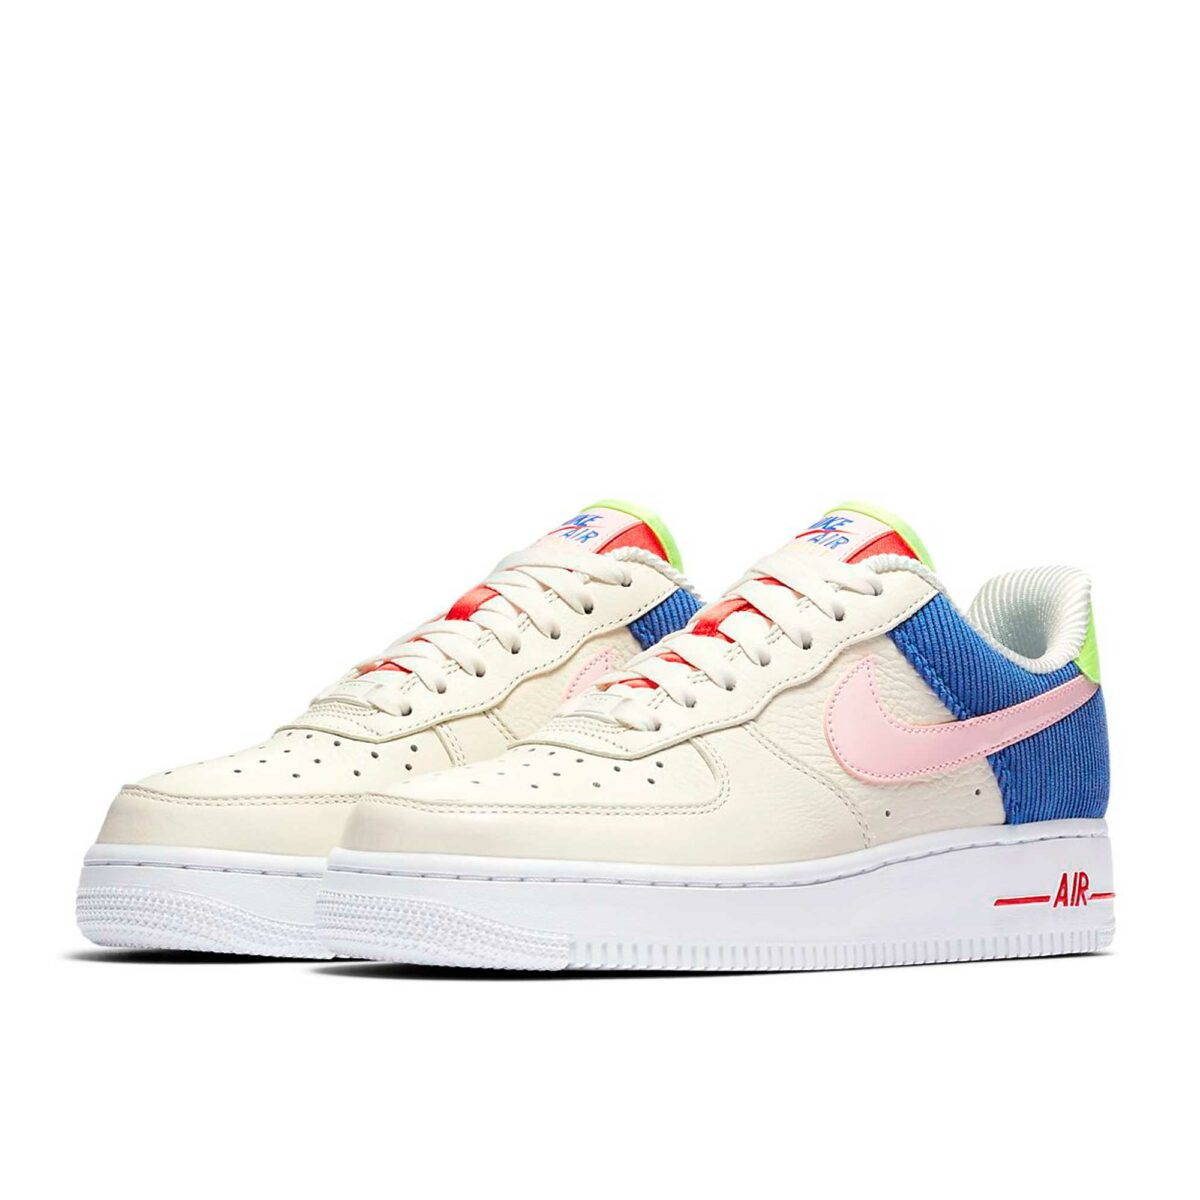 Nike Air Force 1 Low Corduroy AQ4139_101 купить